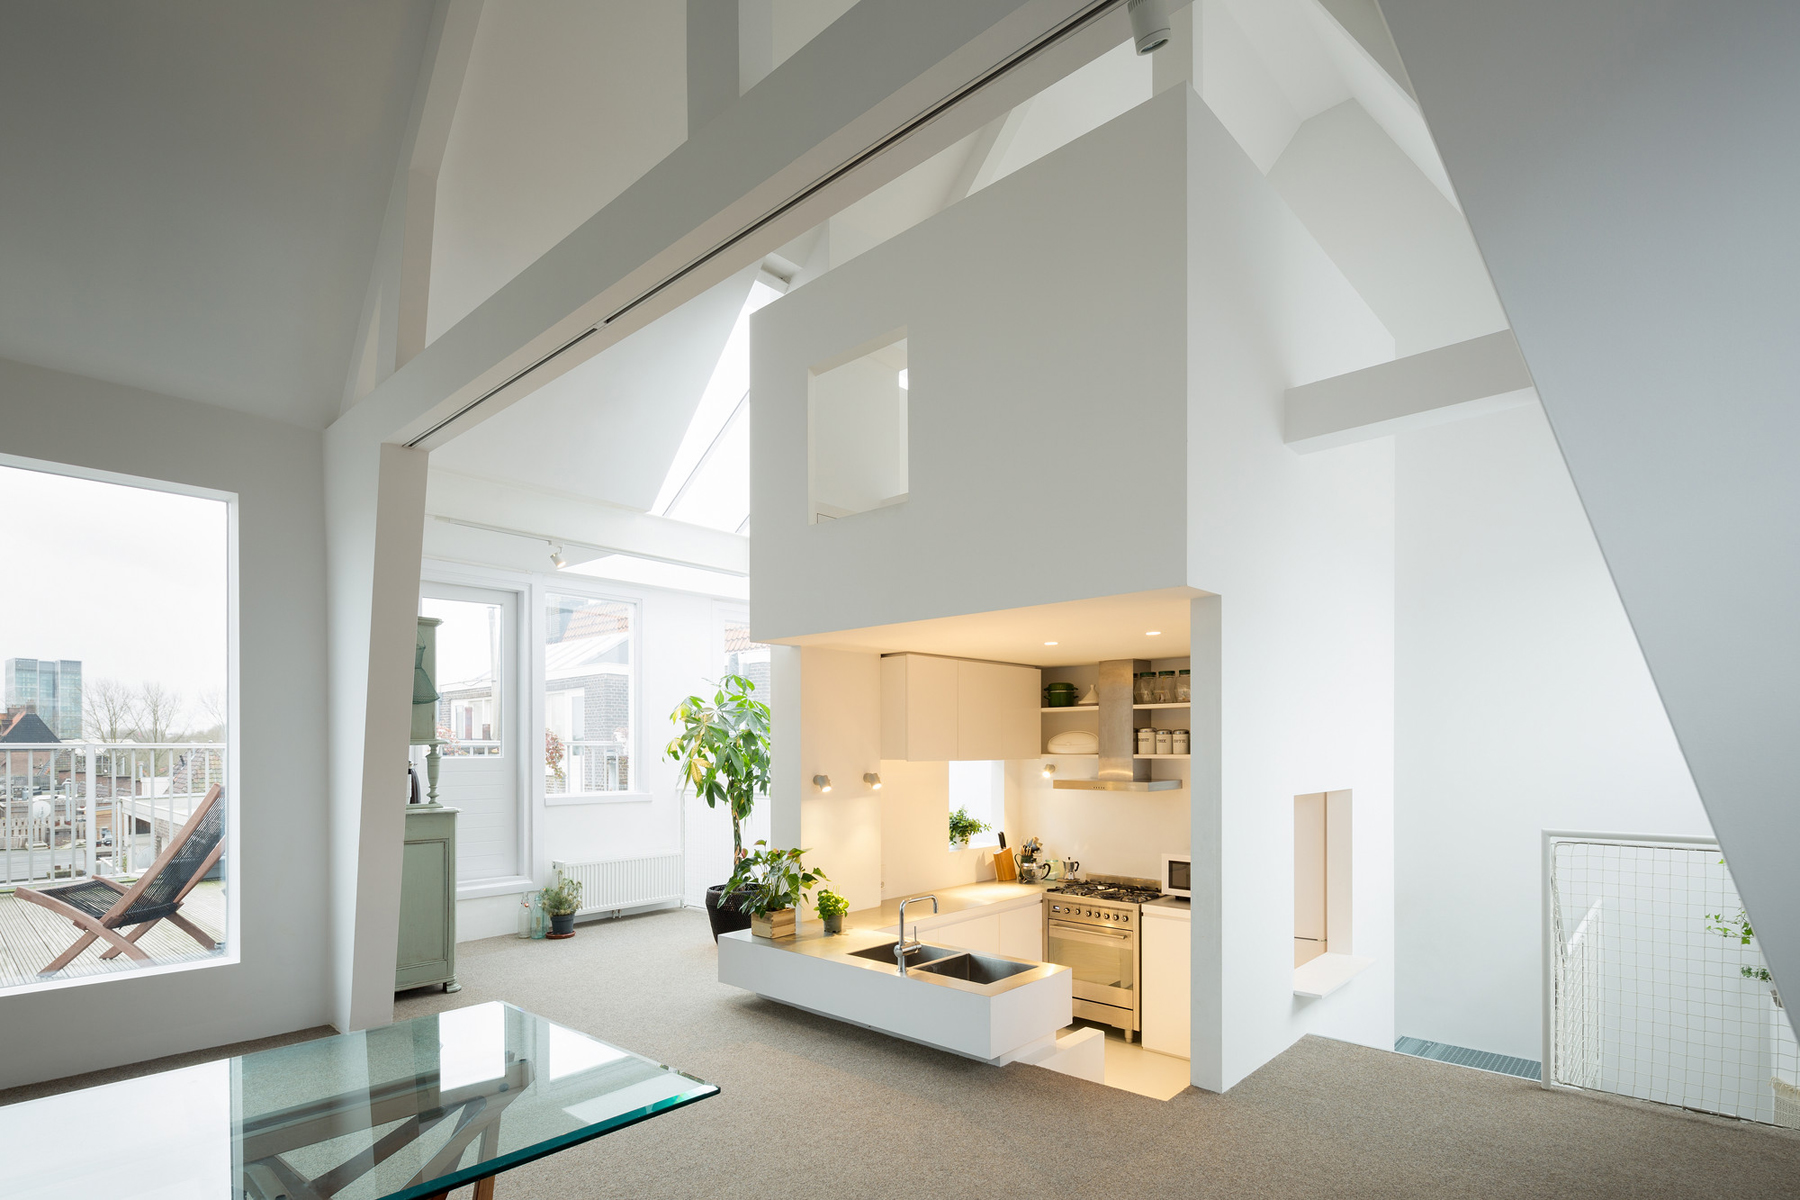 Unique Modern Attic Duplex Apartment In Amsterdam With Clean Design Idesignarch Interior